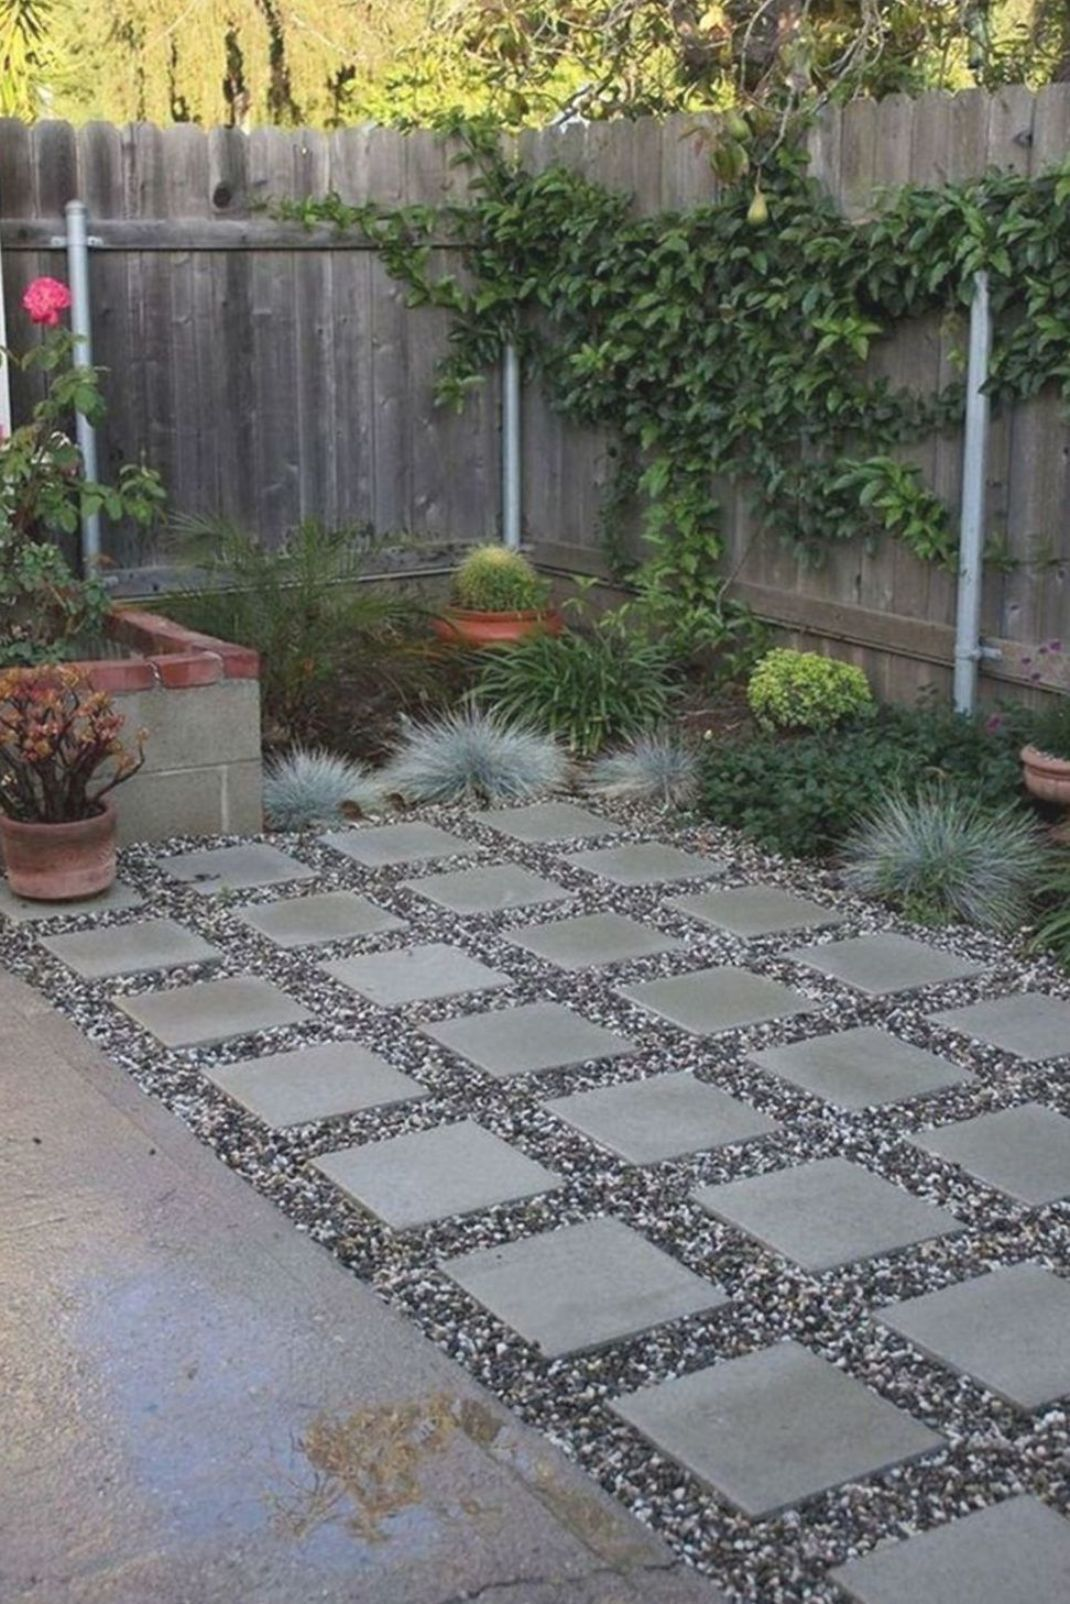 40 Stunning Home Backyard Landscaping With Paving Ideas Garden Paving Paving Ideas Driveway Ideas Cheap